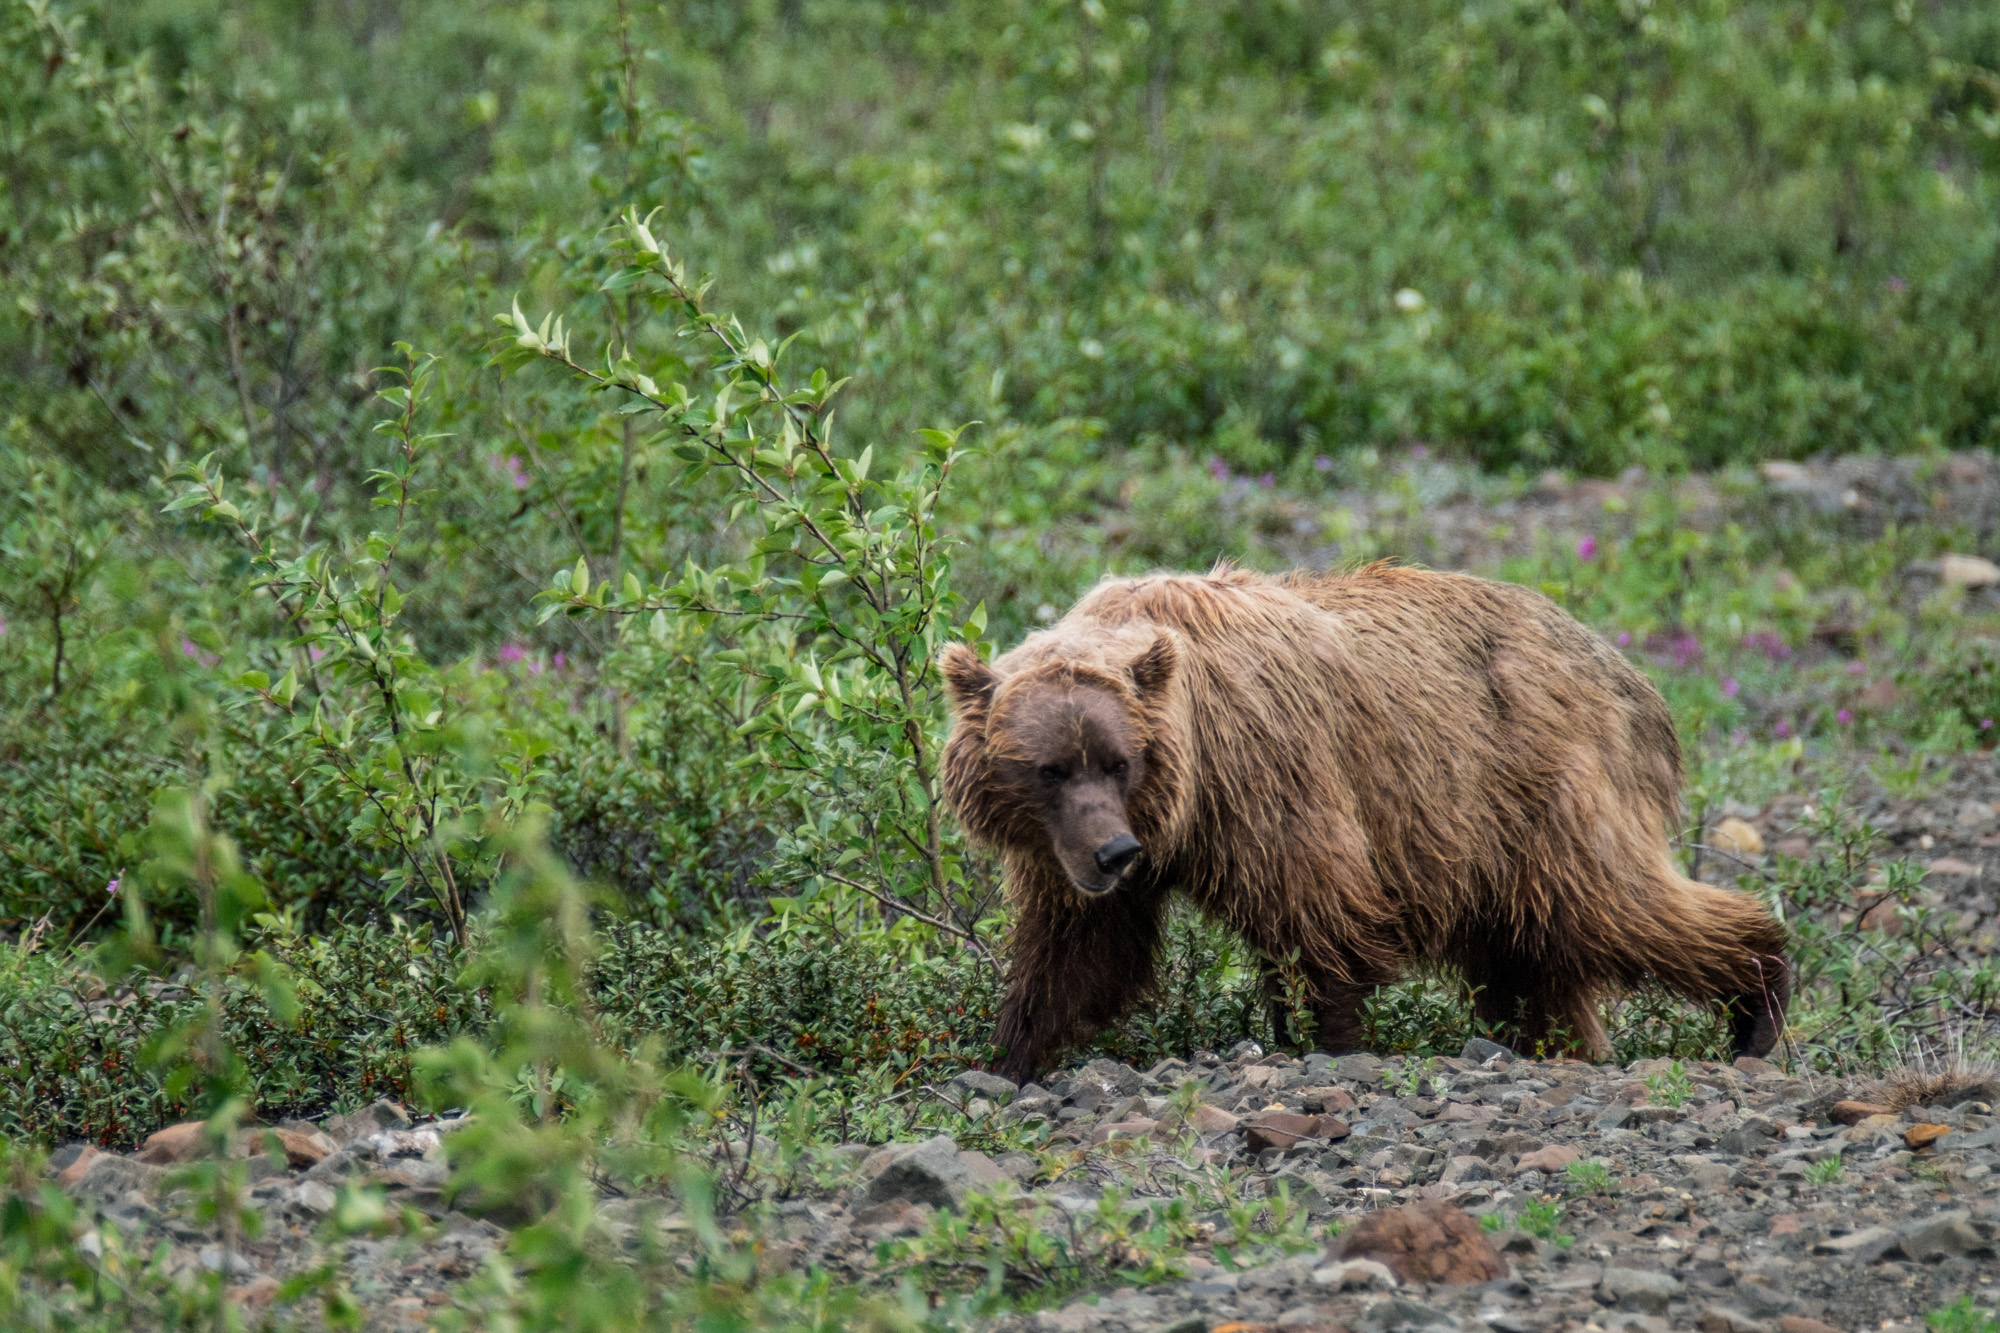 The Denali grizzlies tend to have thicker fur which is much lighter in shade than the coastal bears.